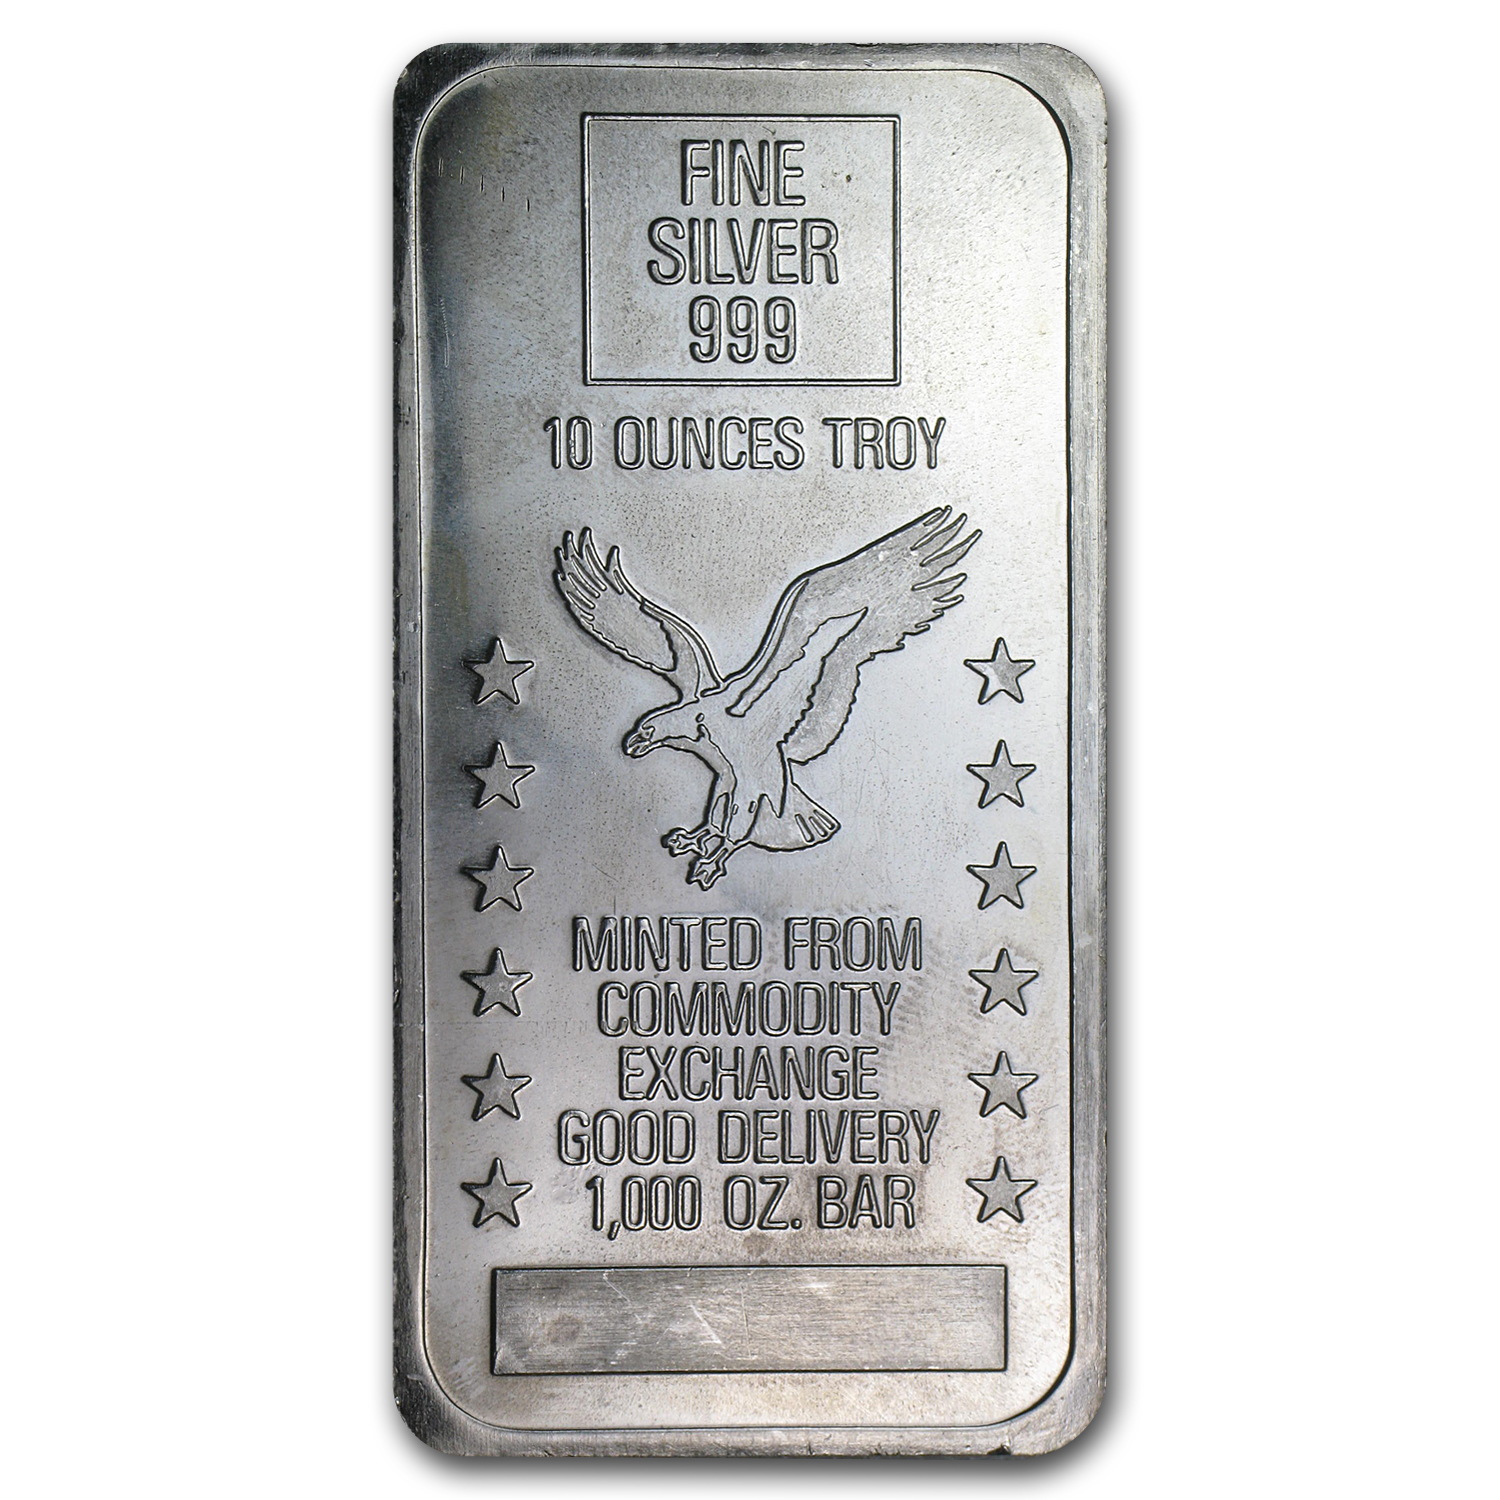 10 oz Silver Bar - Commodity Exchange